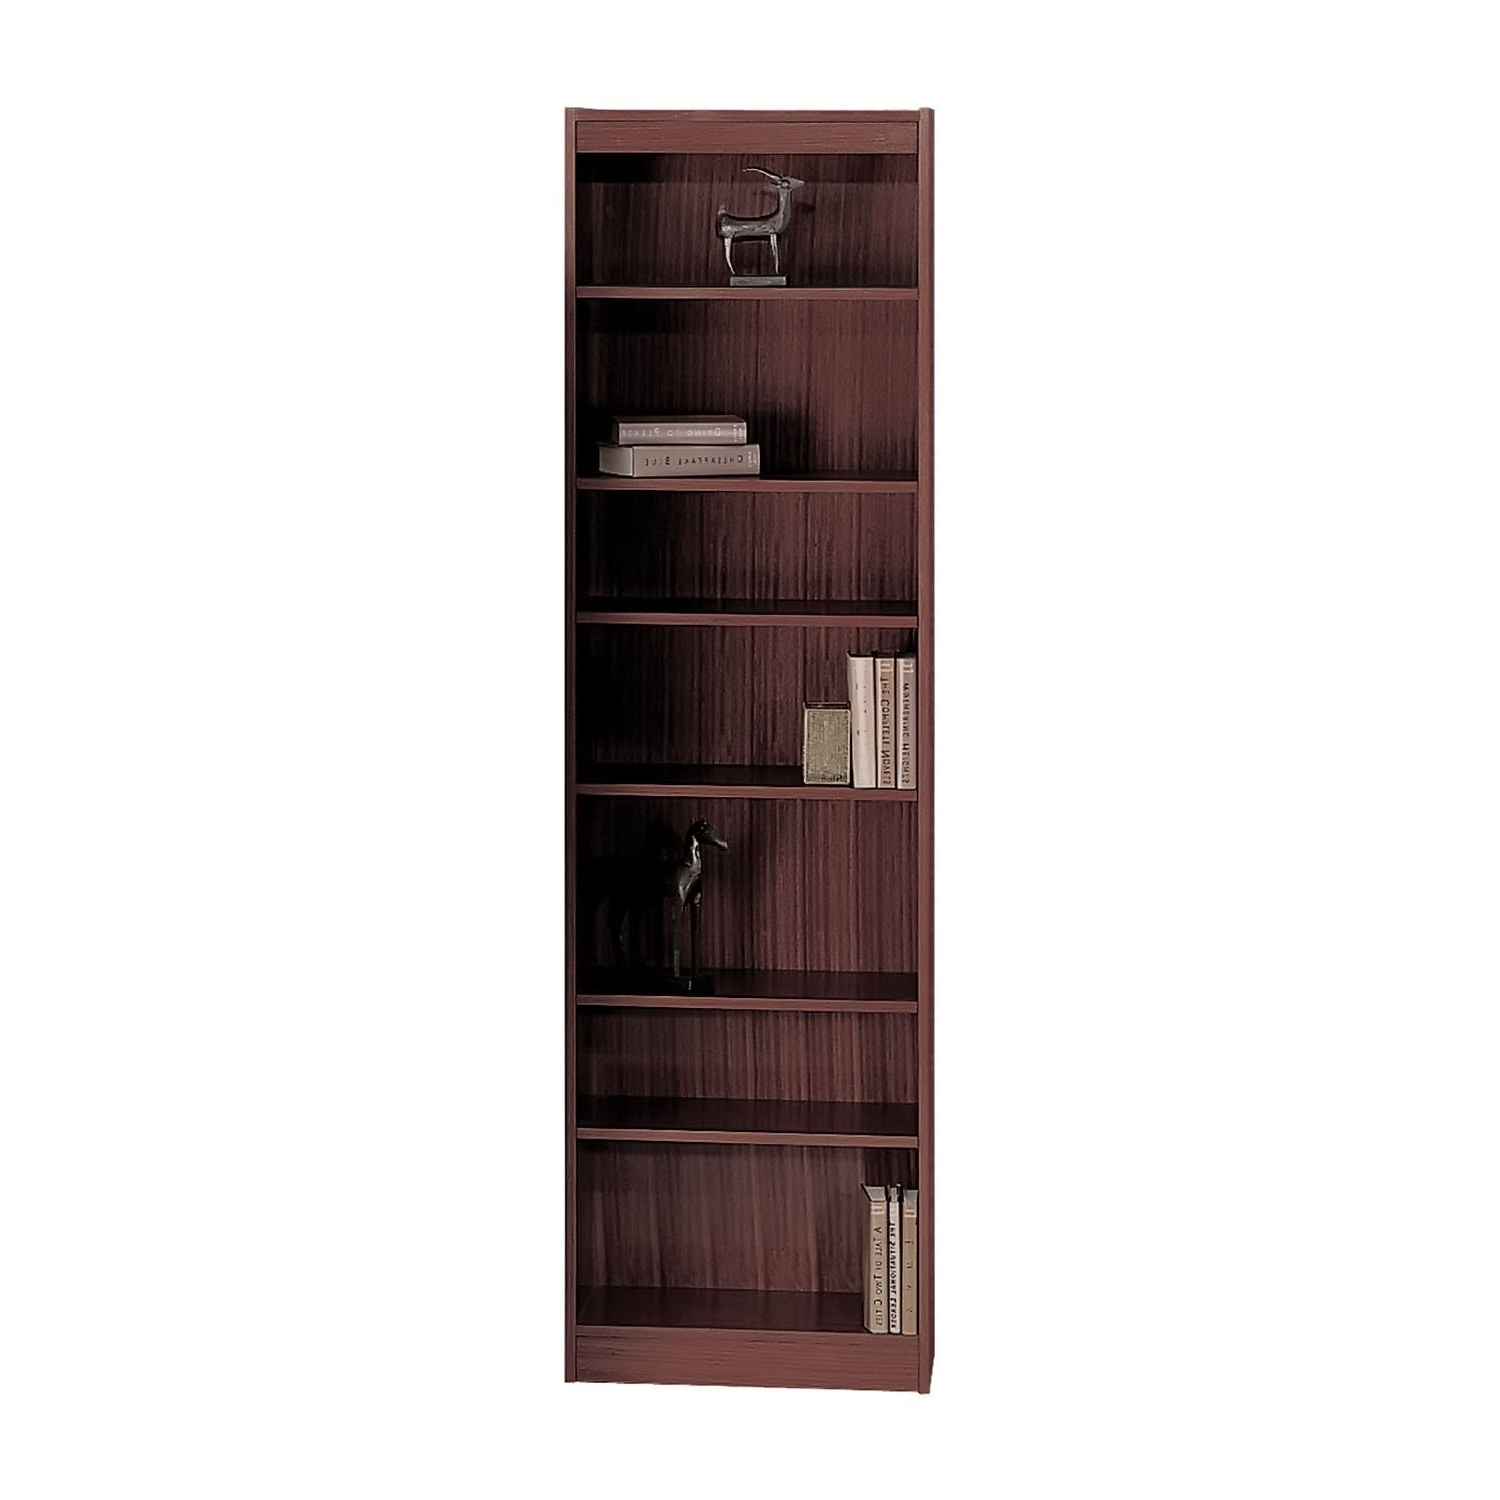 24 Inch Wide Bookcases Within Popular Amazon: Safco 6 Shelf Veneer Baby Bookcase, 24 Inch W (View 3 of 15)